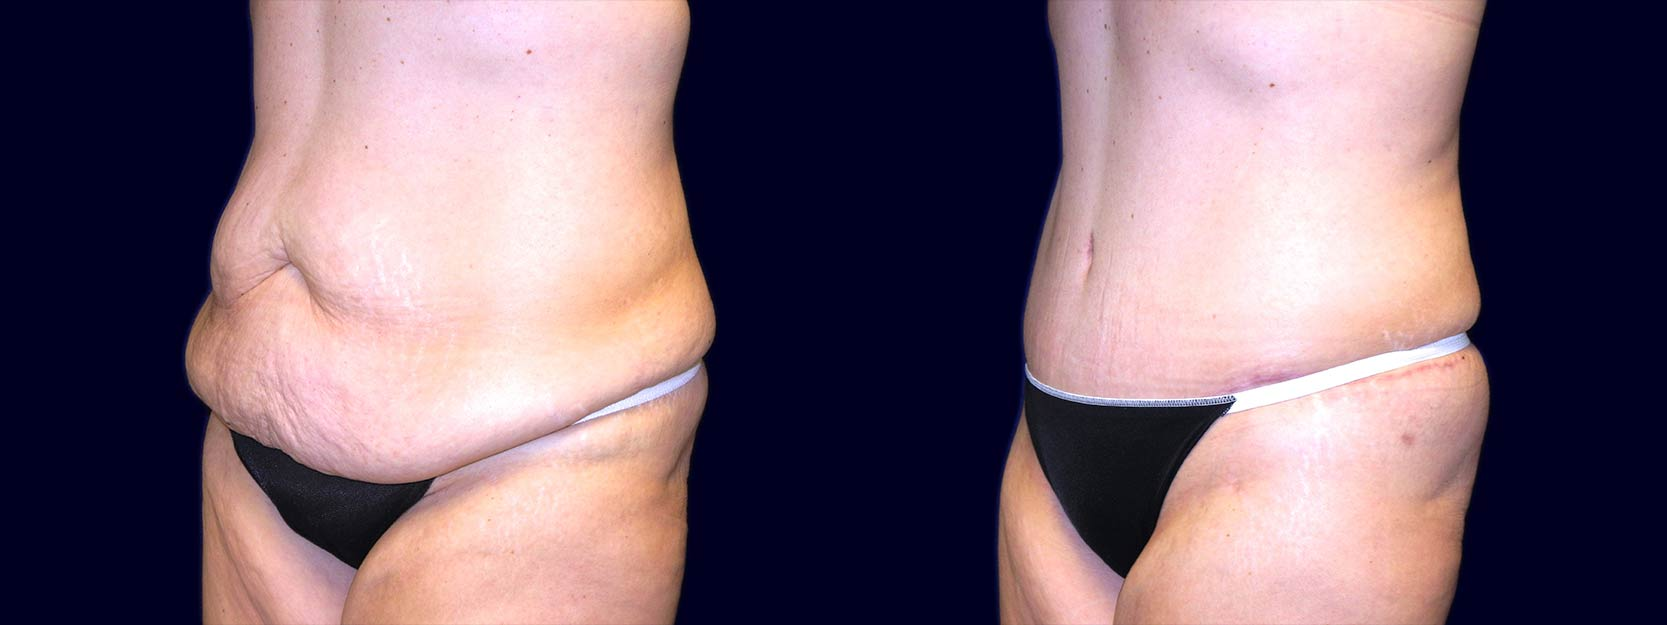 Left 3/4 View - Extended Abdominoplasty